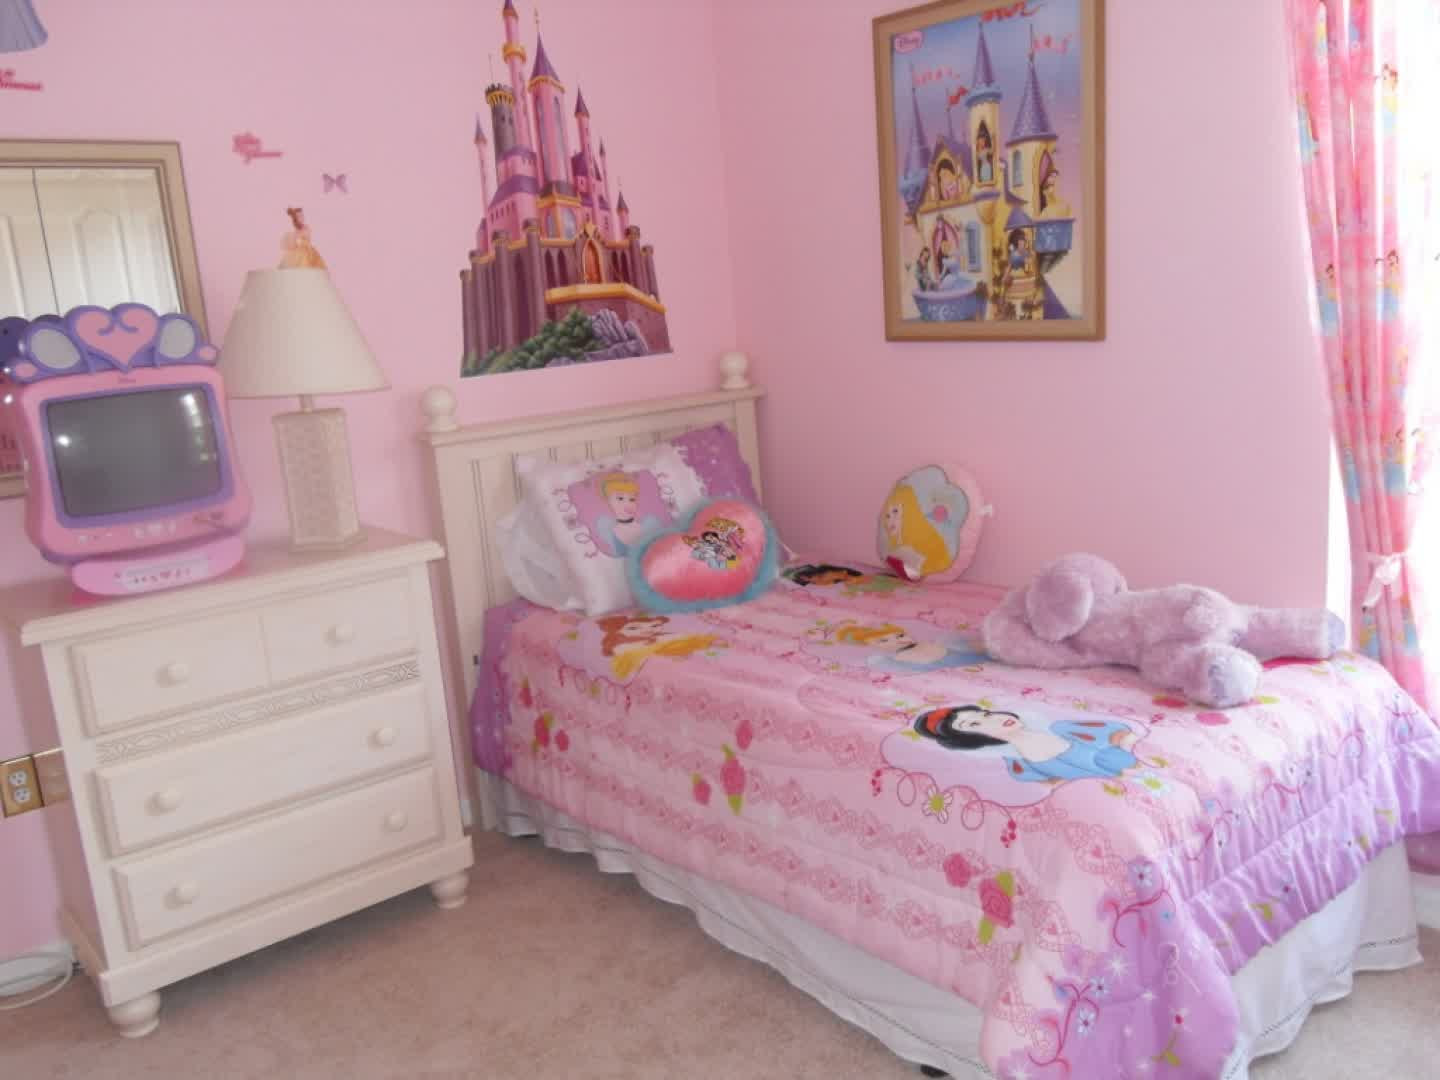 Chic Pink Bedroom Ideas for Girls - A Truly Lovely Look ...